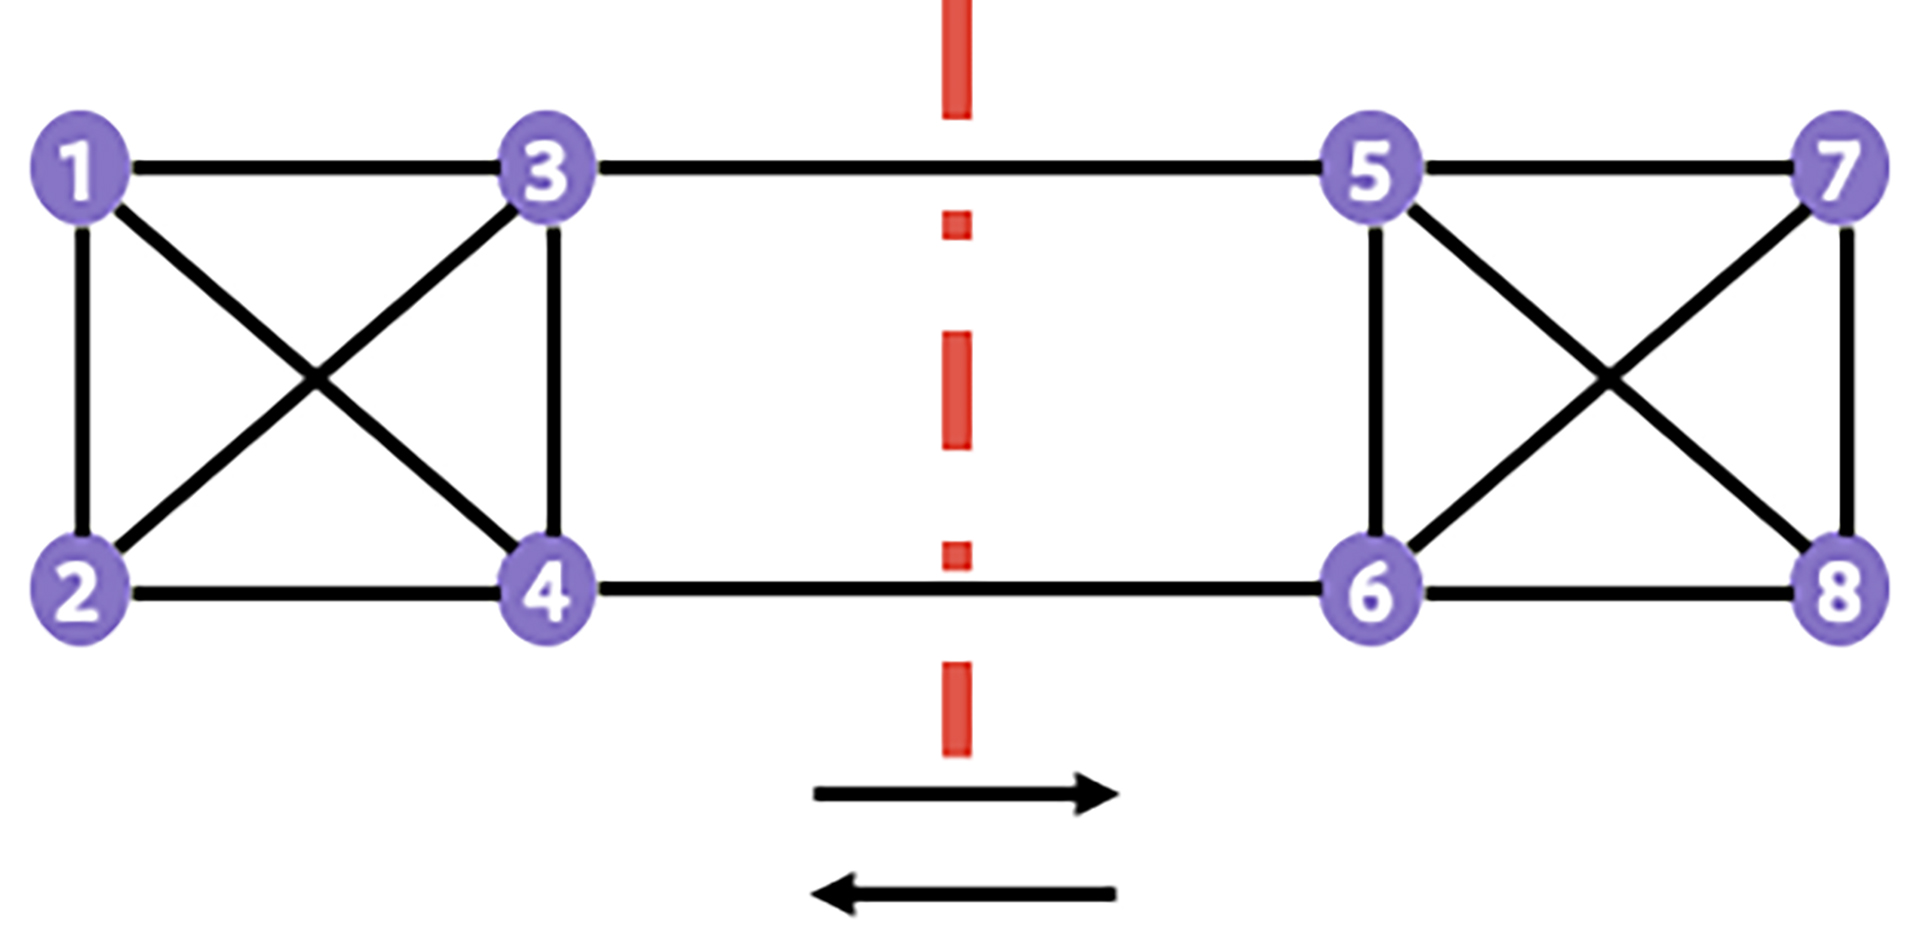 This network cut partitions the topology into two sets of nodes, (1,2,3,4) and (5,6,7,8)